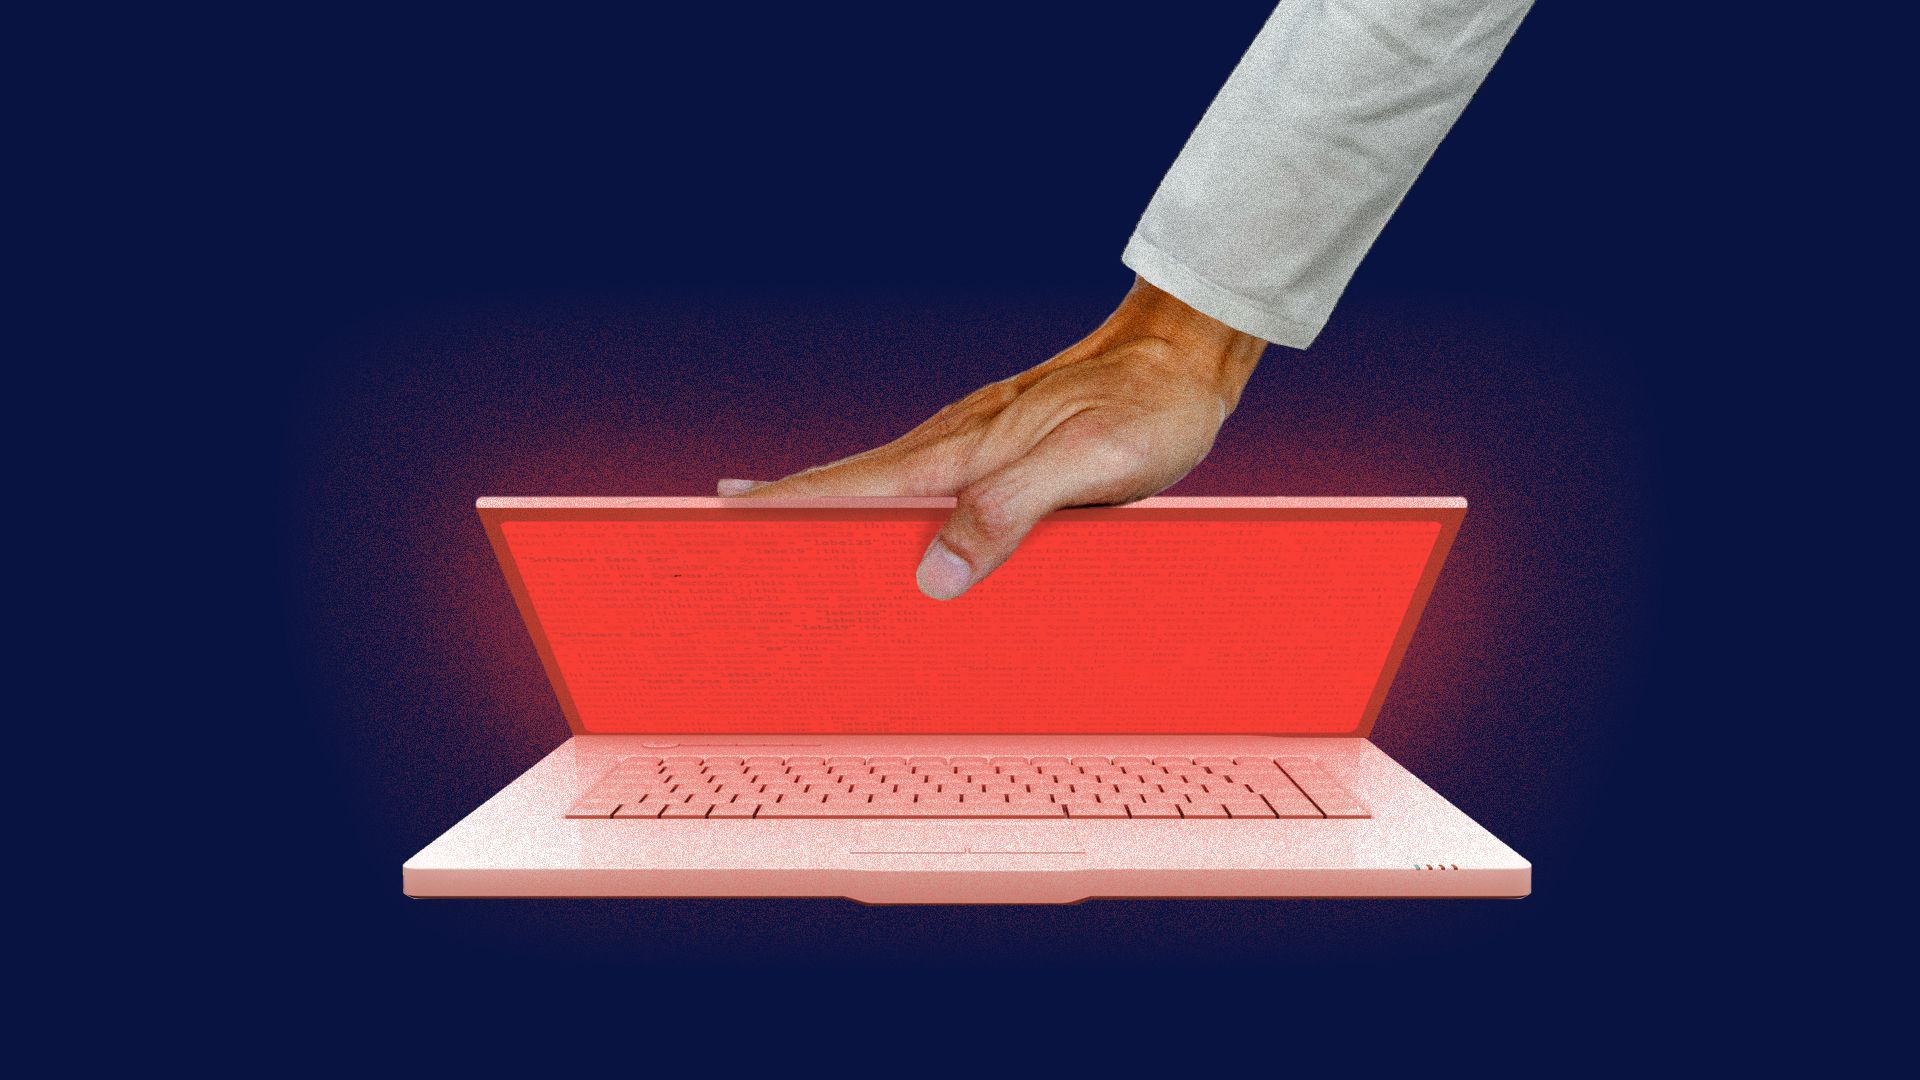 A man shuts a laptop displaying a red screen.